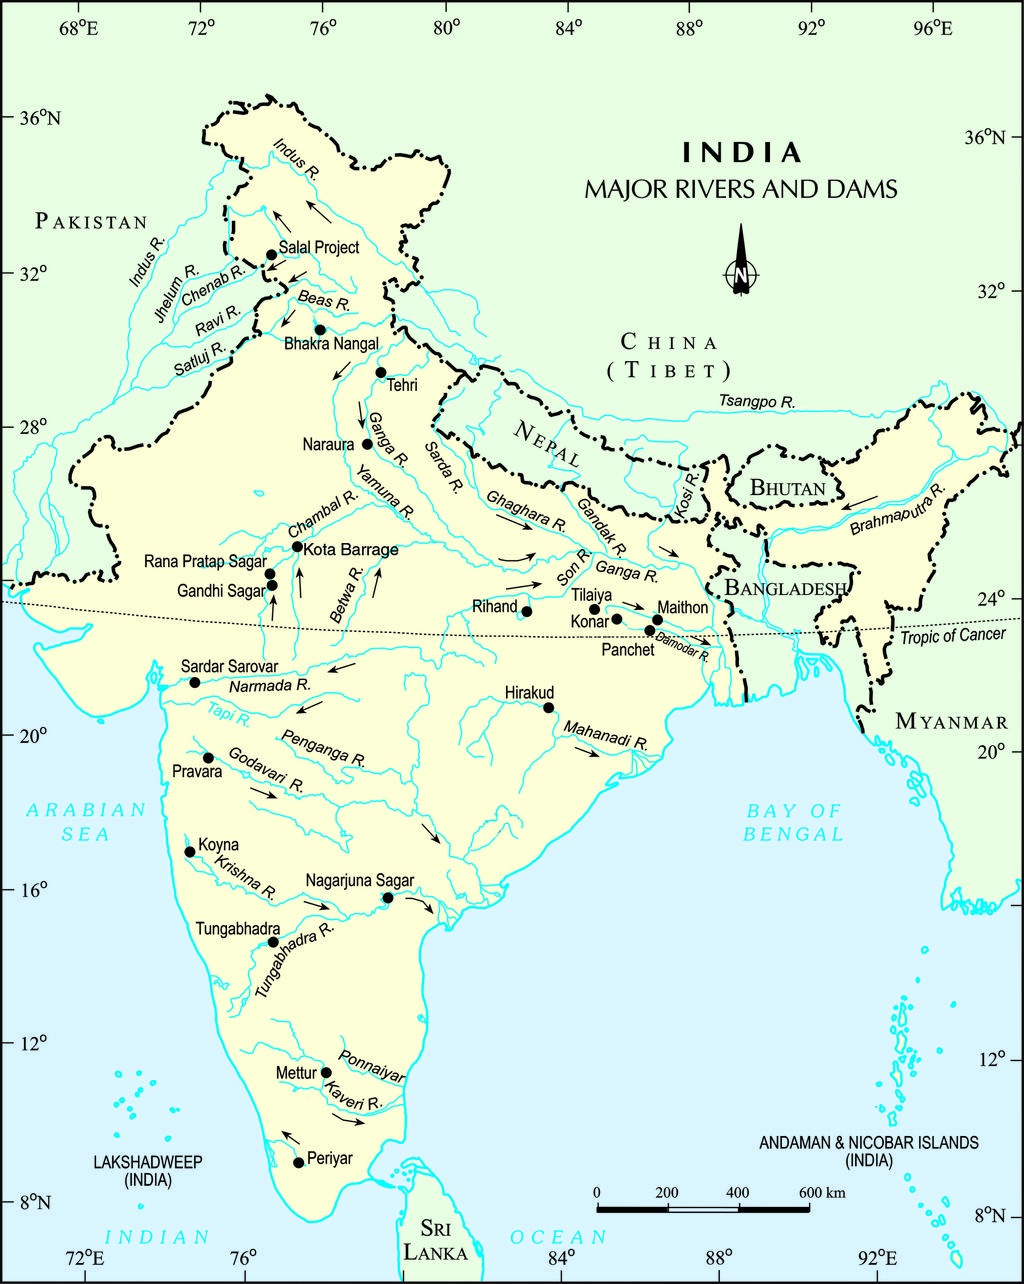 Ganges River India Map : ganges, river, india, River, India, Major, Indian, Rivers, WhatsAnswer